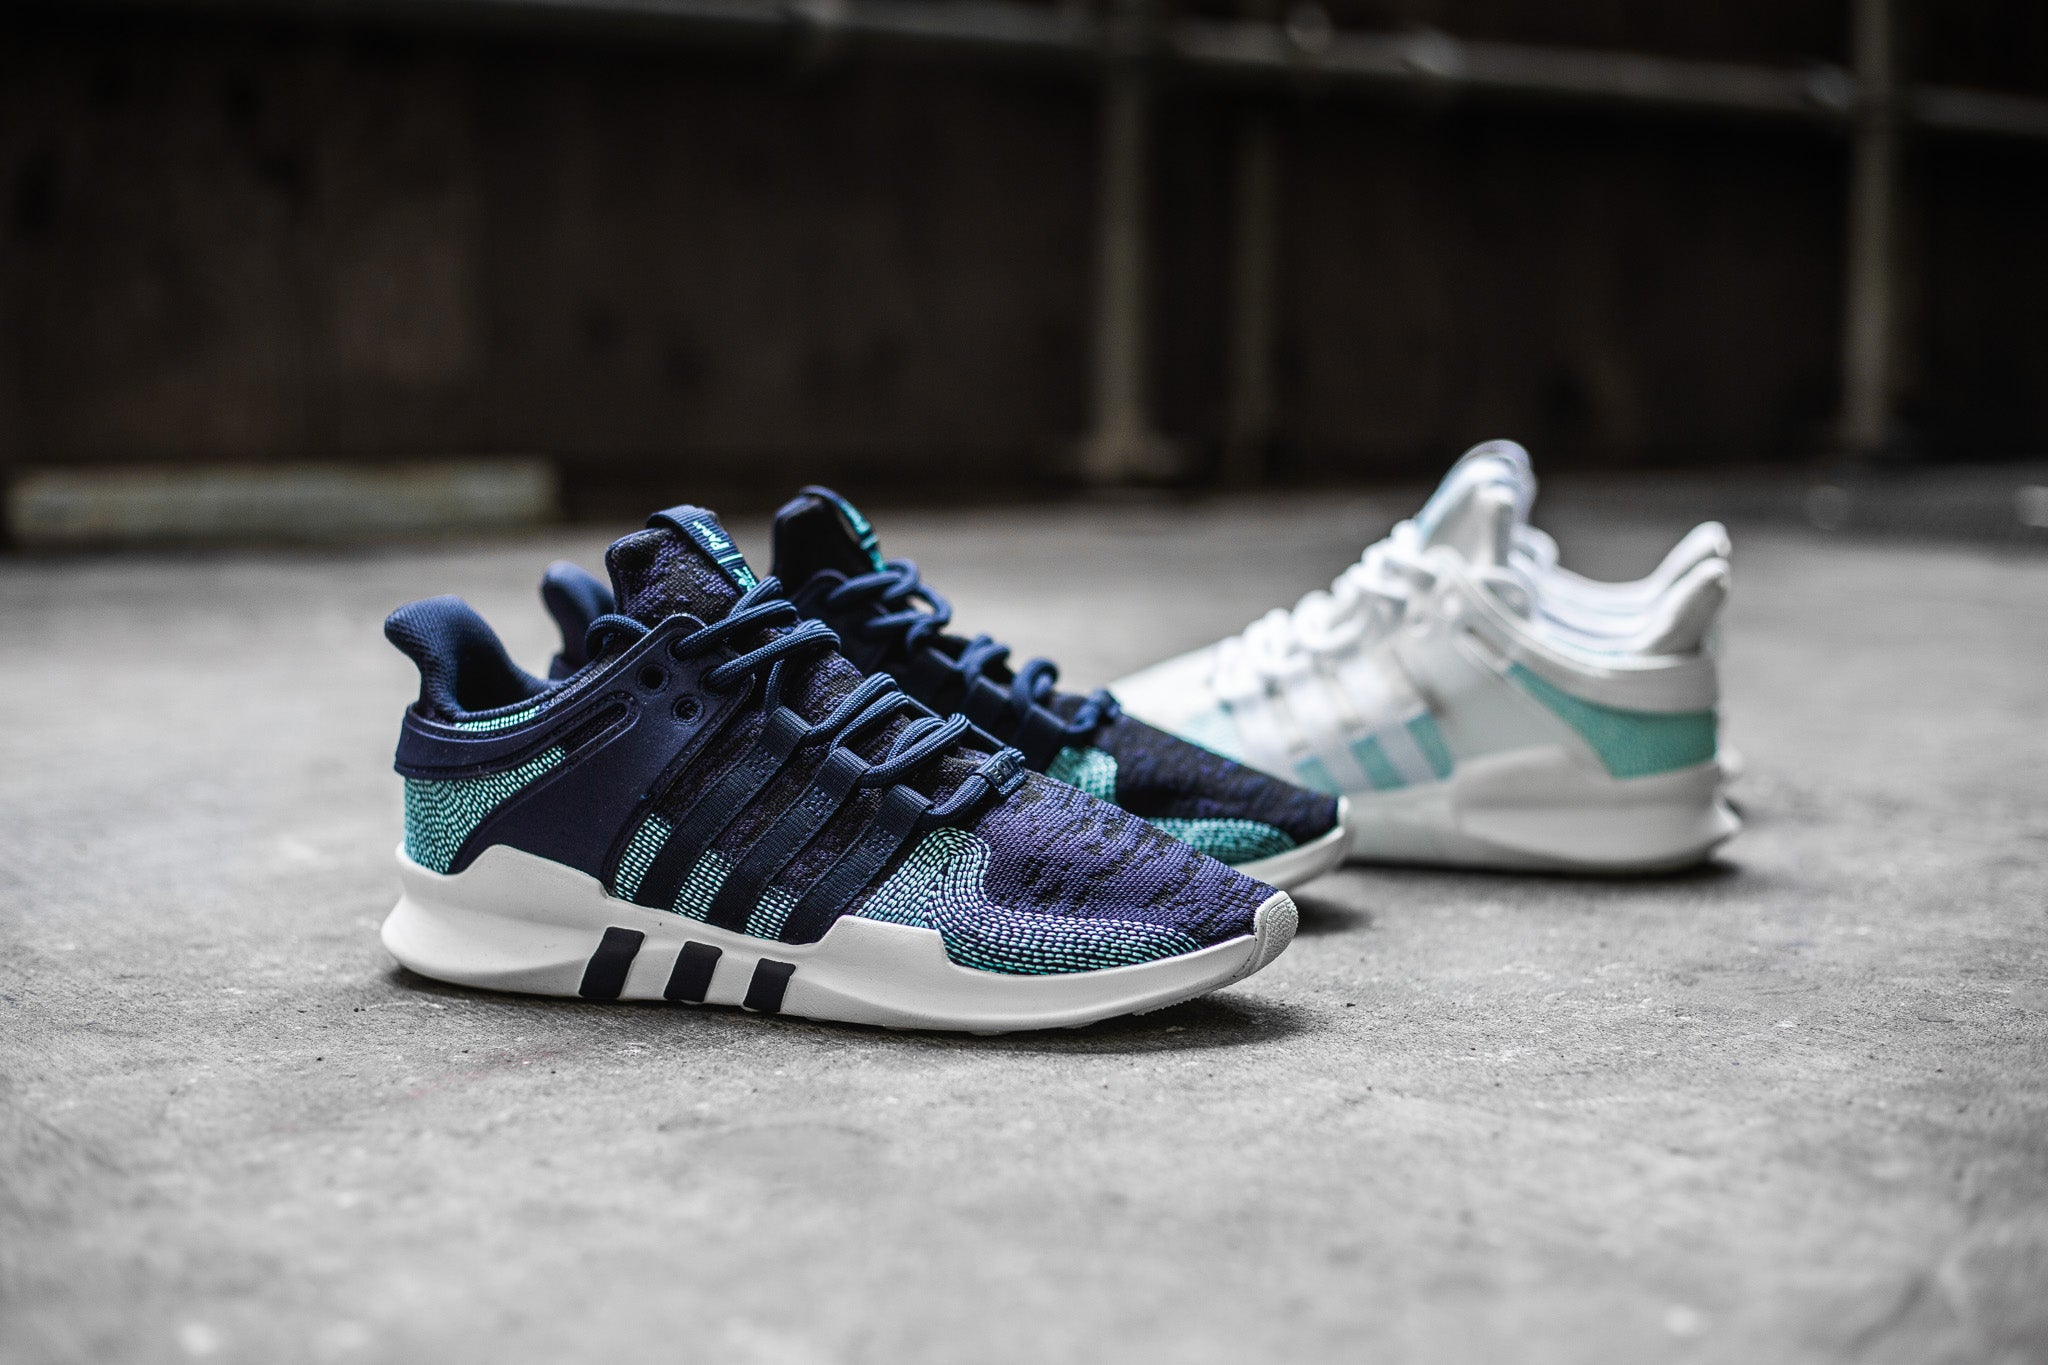 brand new 4d866 e4149 In support of Parley for the Oceans, adidas releases another ocean-themed  colourway for the EQT Support ADV. Both pairs swap out the mesh for the  parley ...